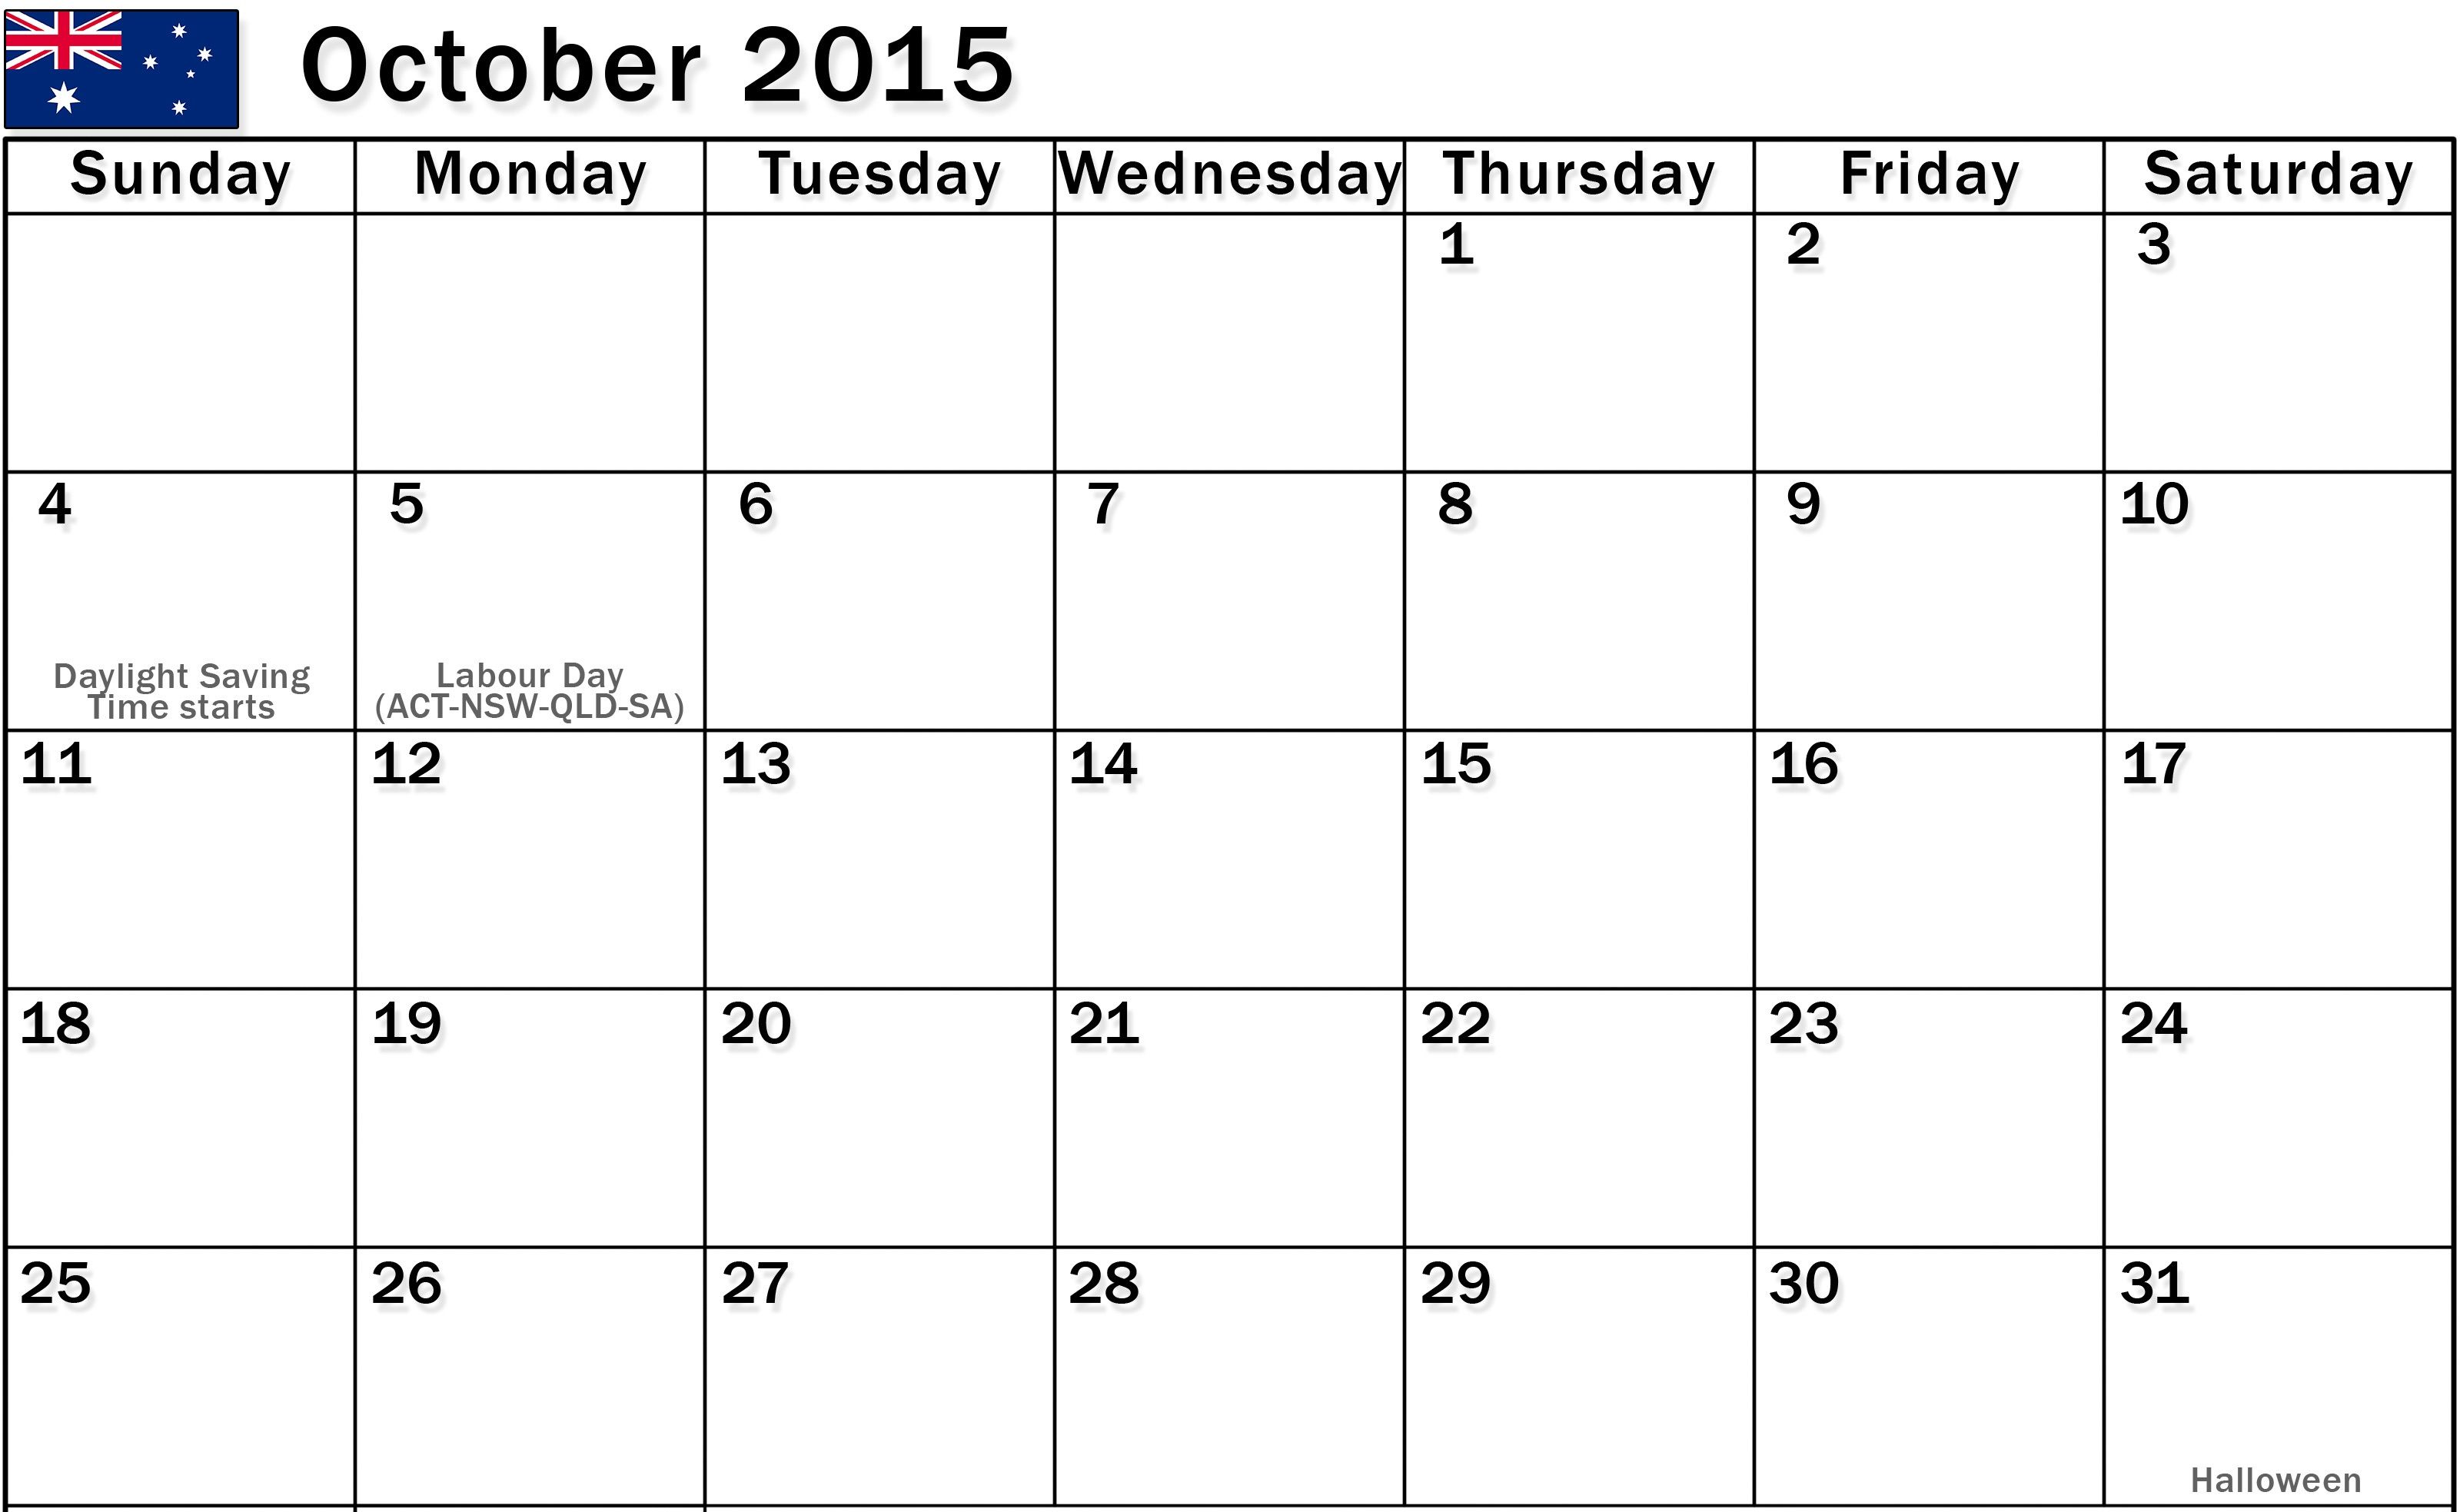 October 2015 Calendar Moon Printable Pdf Pictures Images Templates Holidays Events Usa Uk Free Printable Calendar Calendar Printables September Calendar